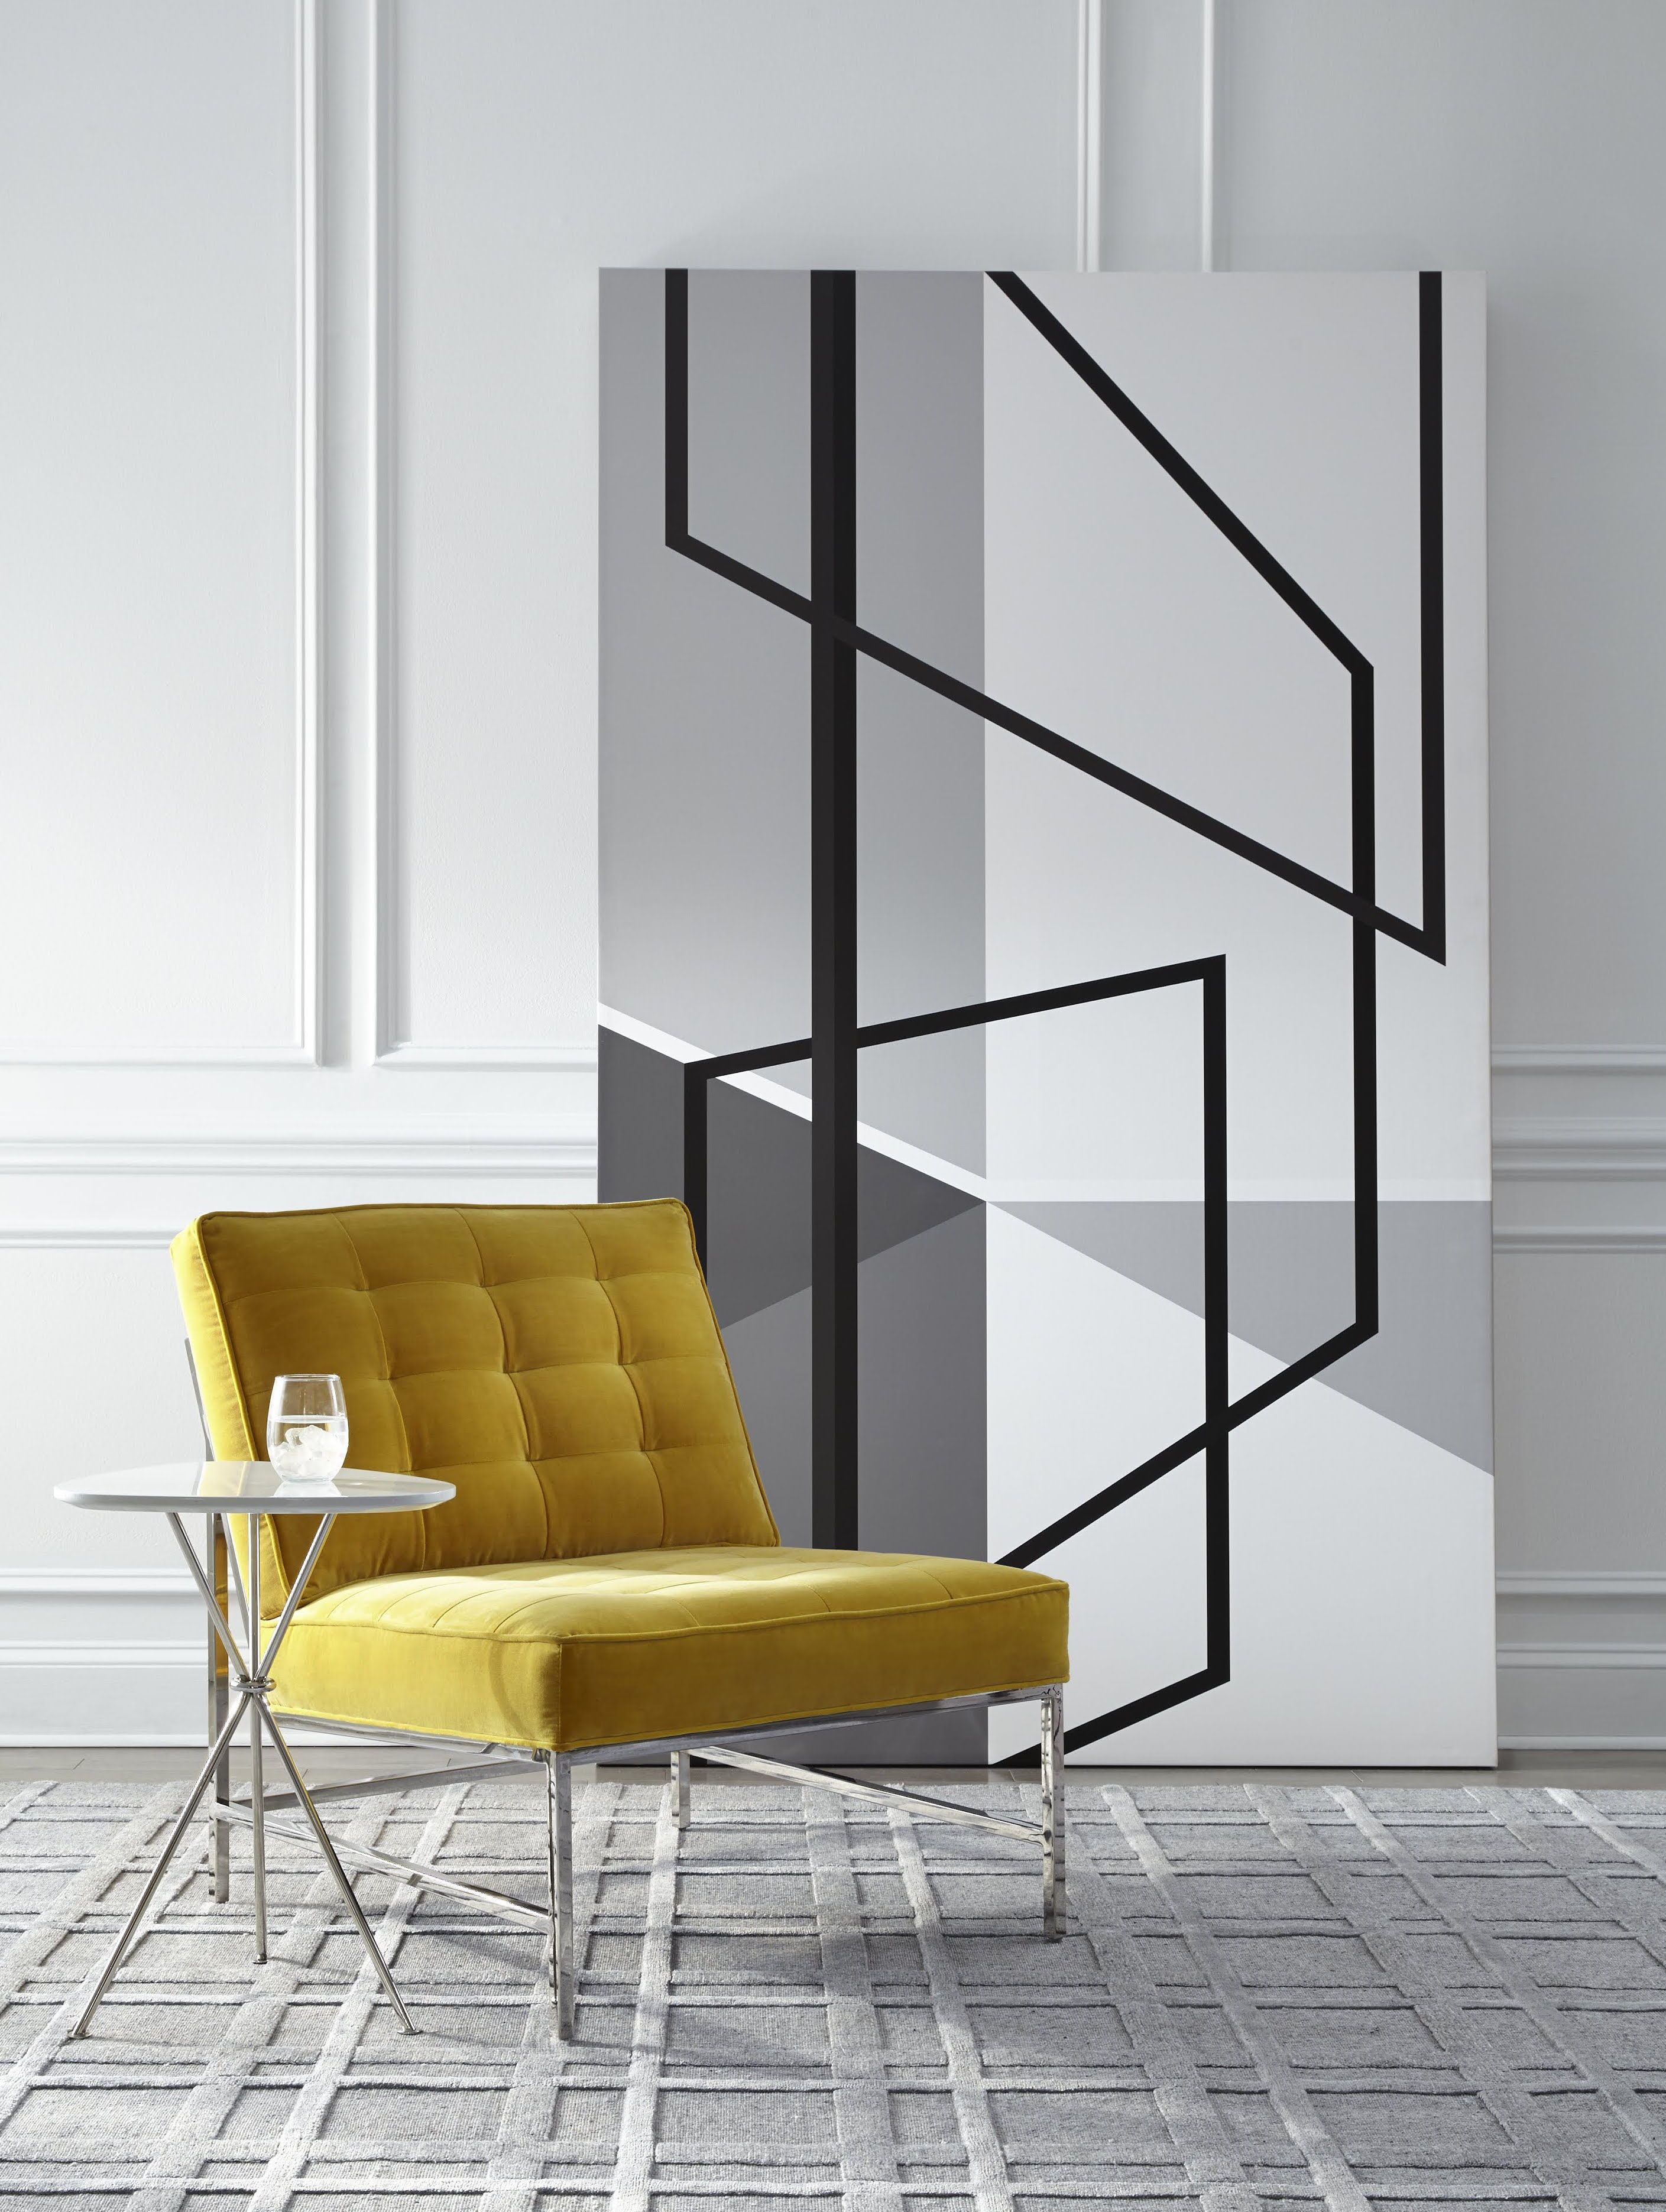 MG BW Geometric Perspective Wall Art Create a bold impact from